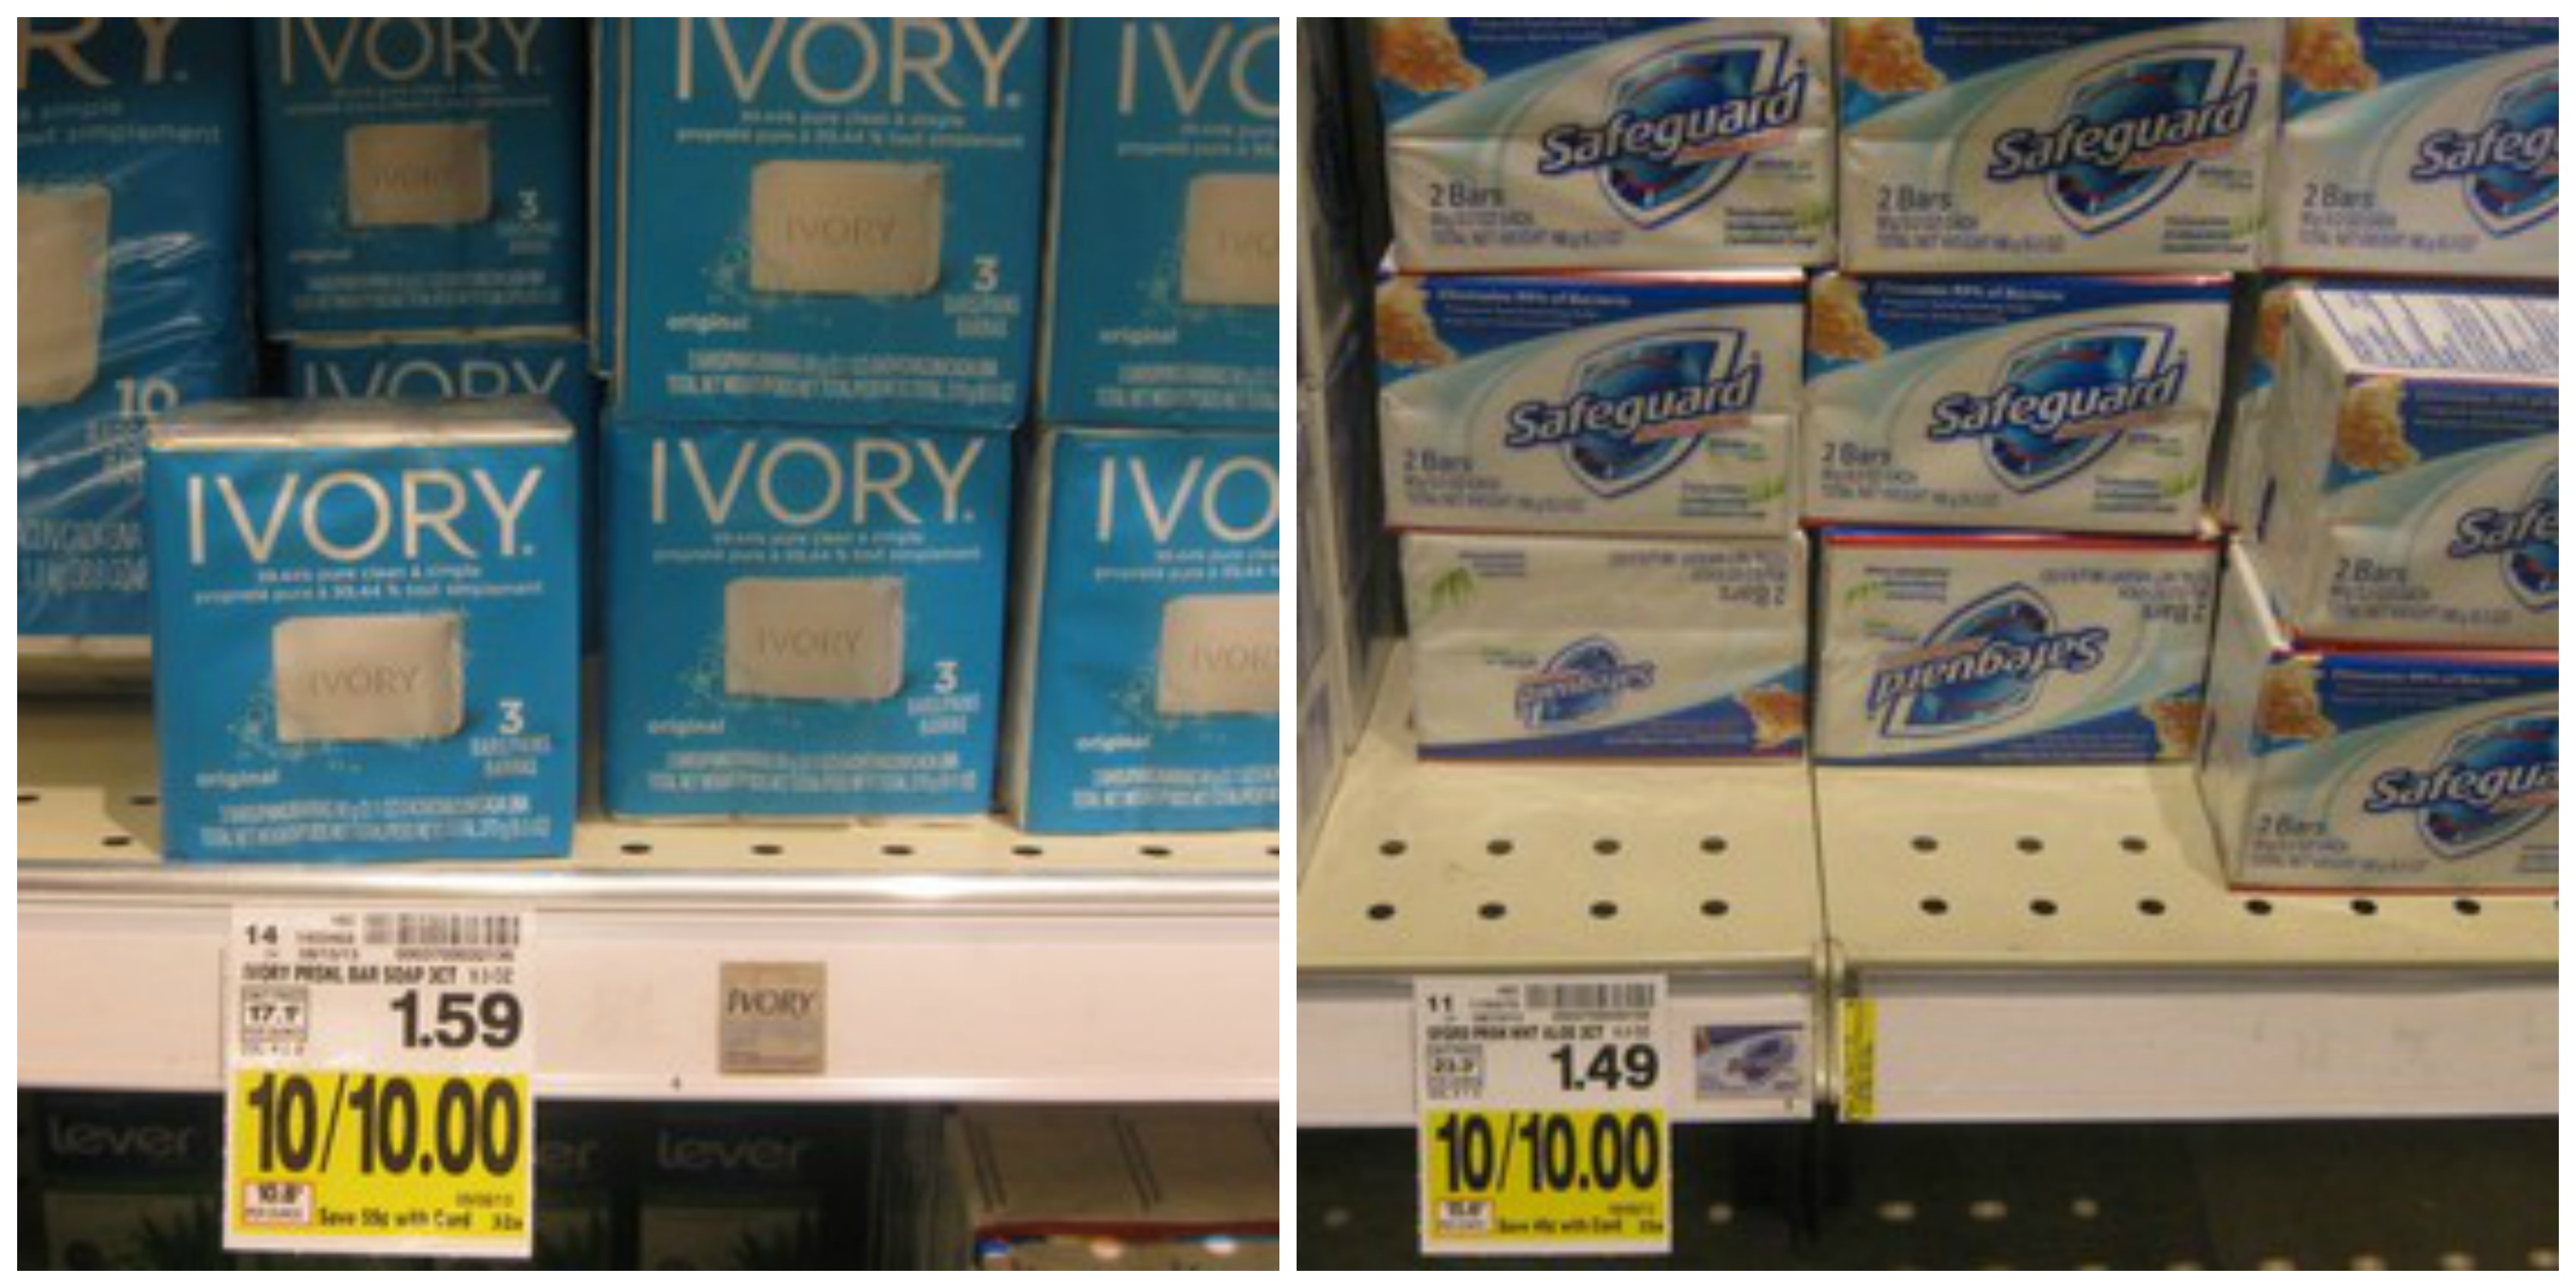 ivorysafeguard FREE Ivory & Safeguard Soap at Kroger!